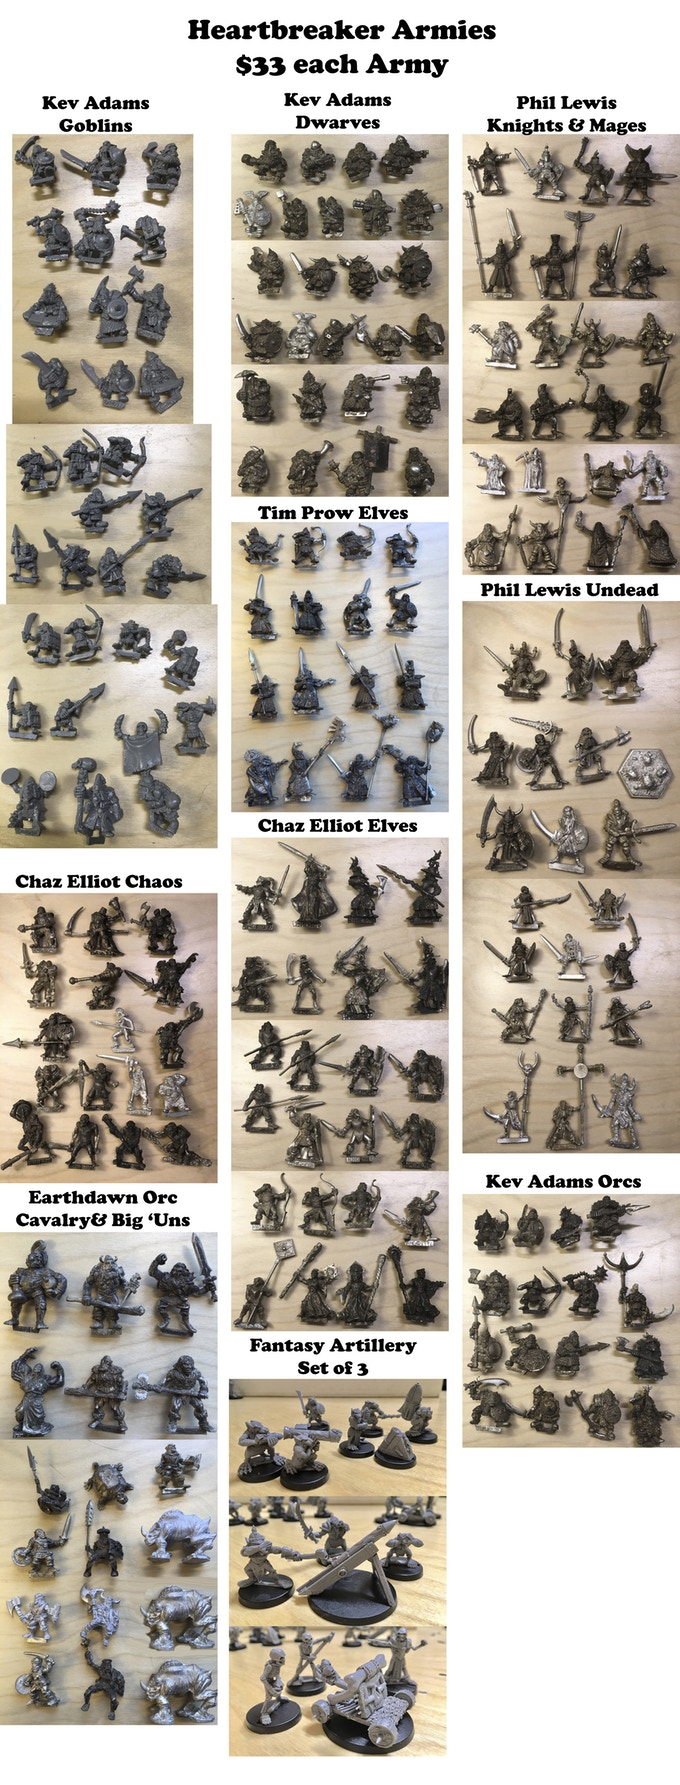 The Lost Minis #3 - Impact Miniatures